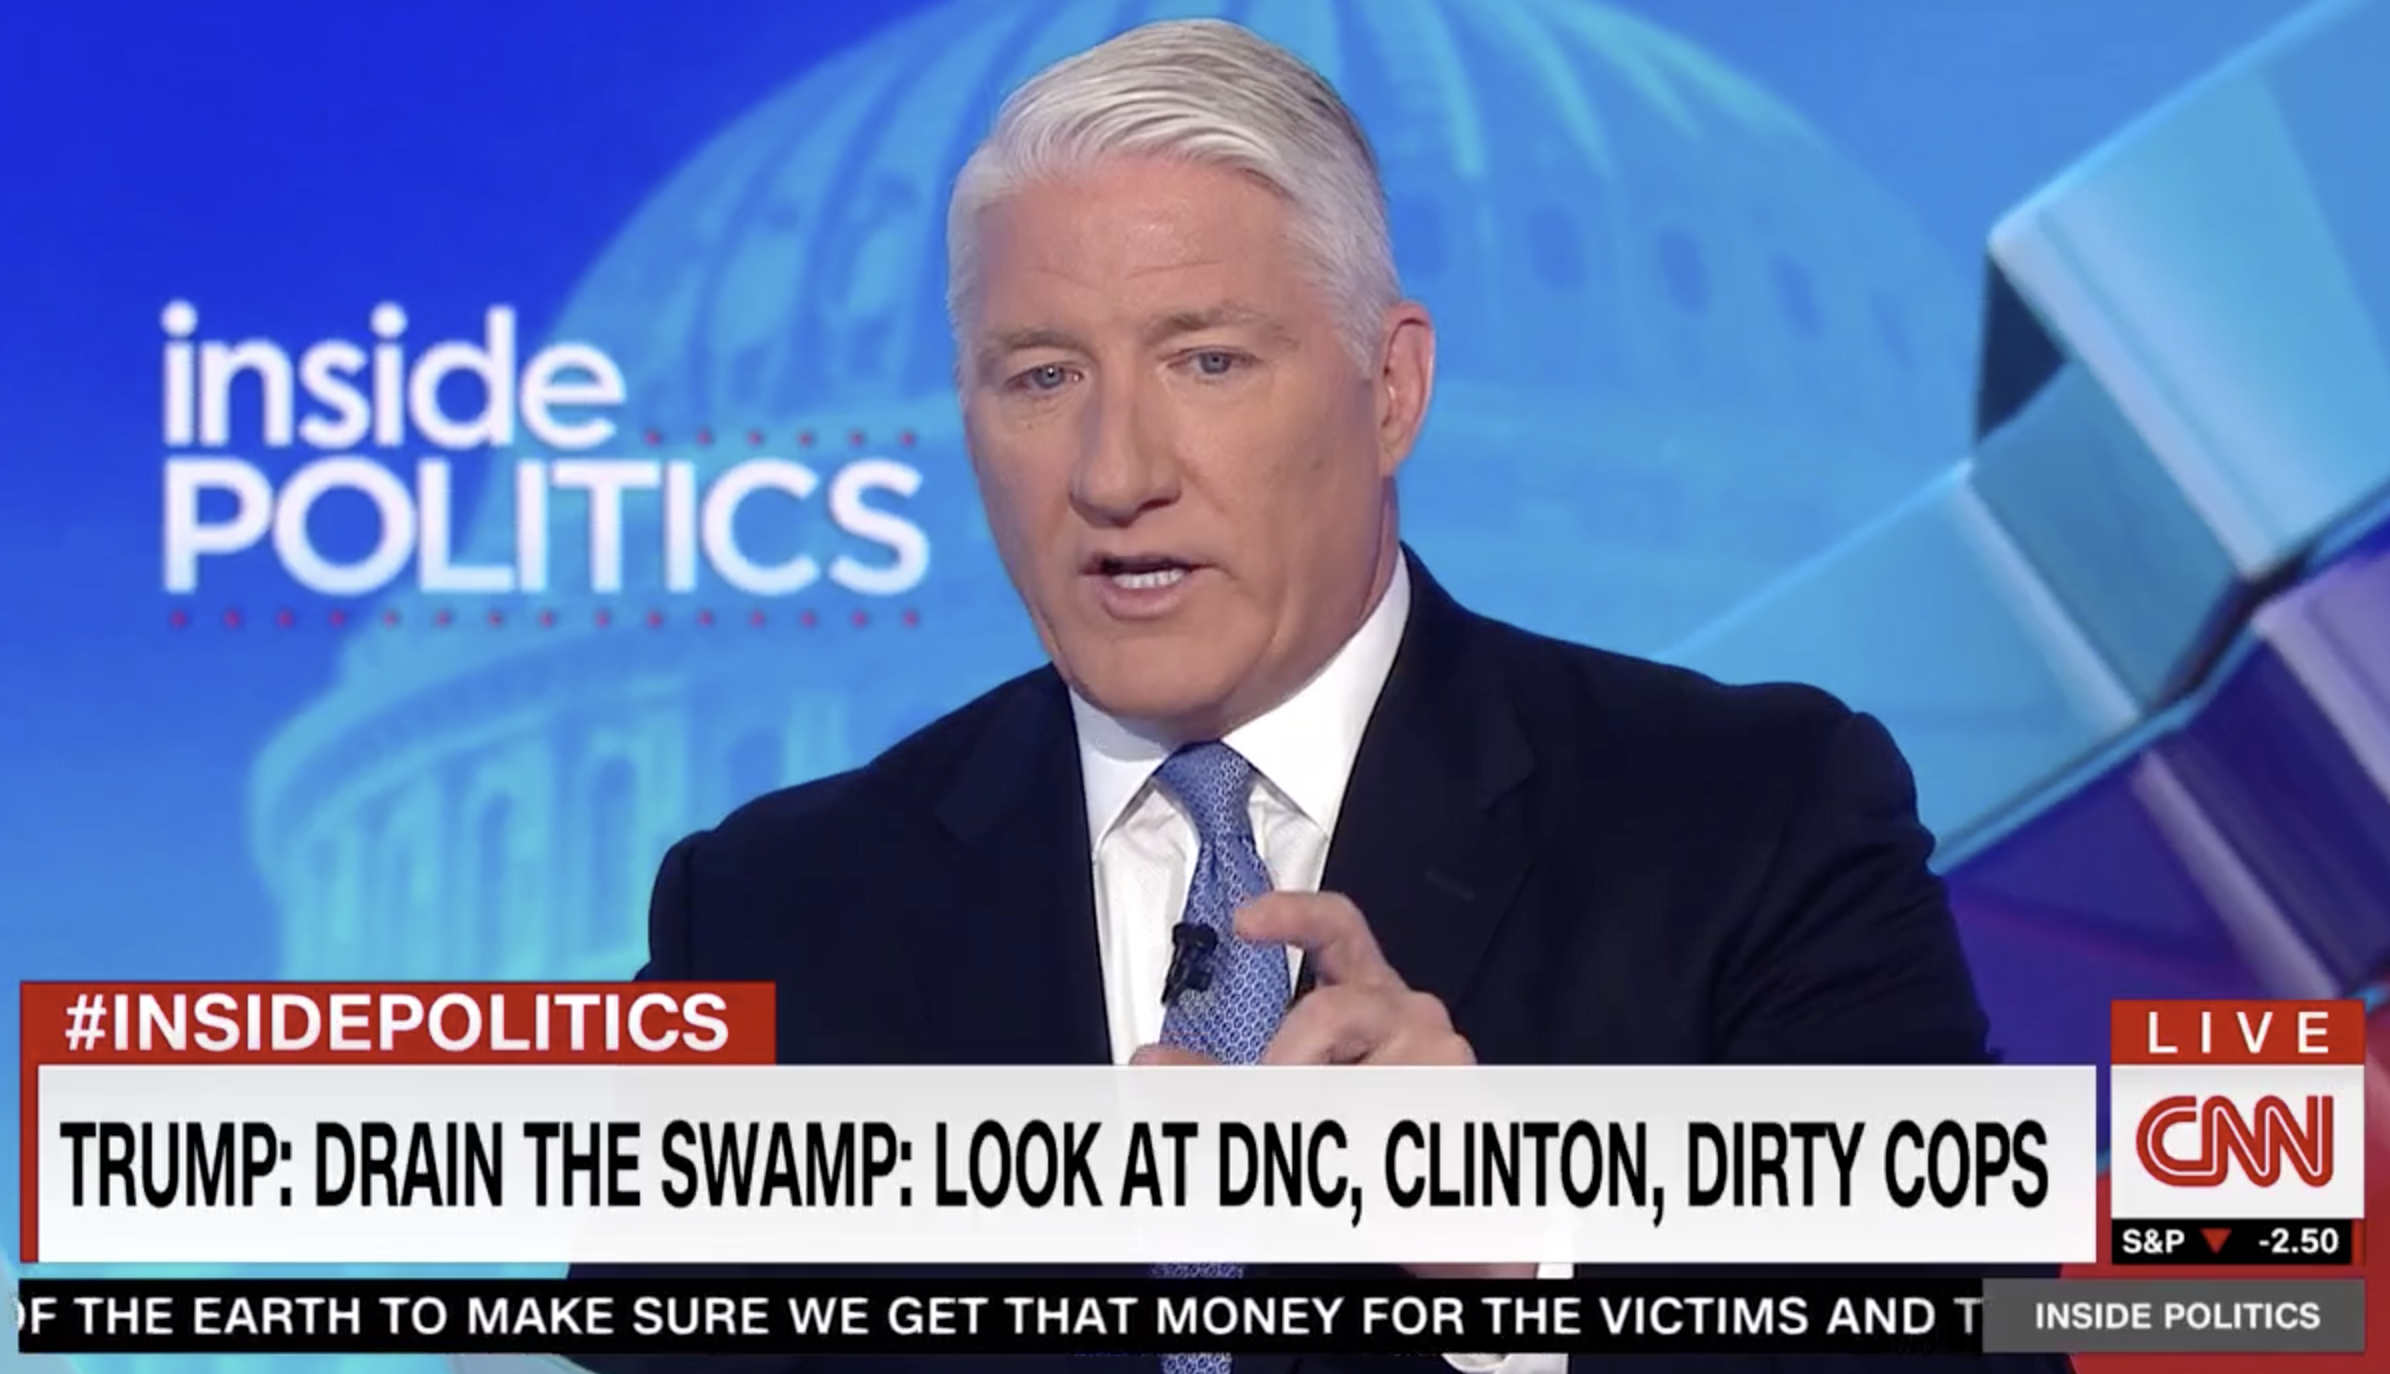 CNN Host Mercilessly Mocks Trump And Limbaugh: 'Hillary Is That Powerful?'